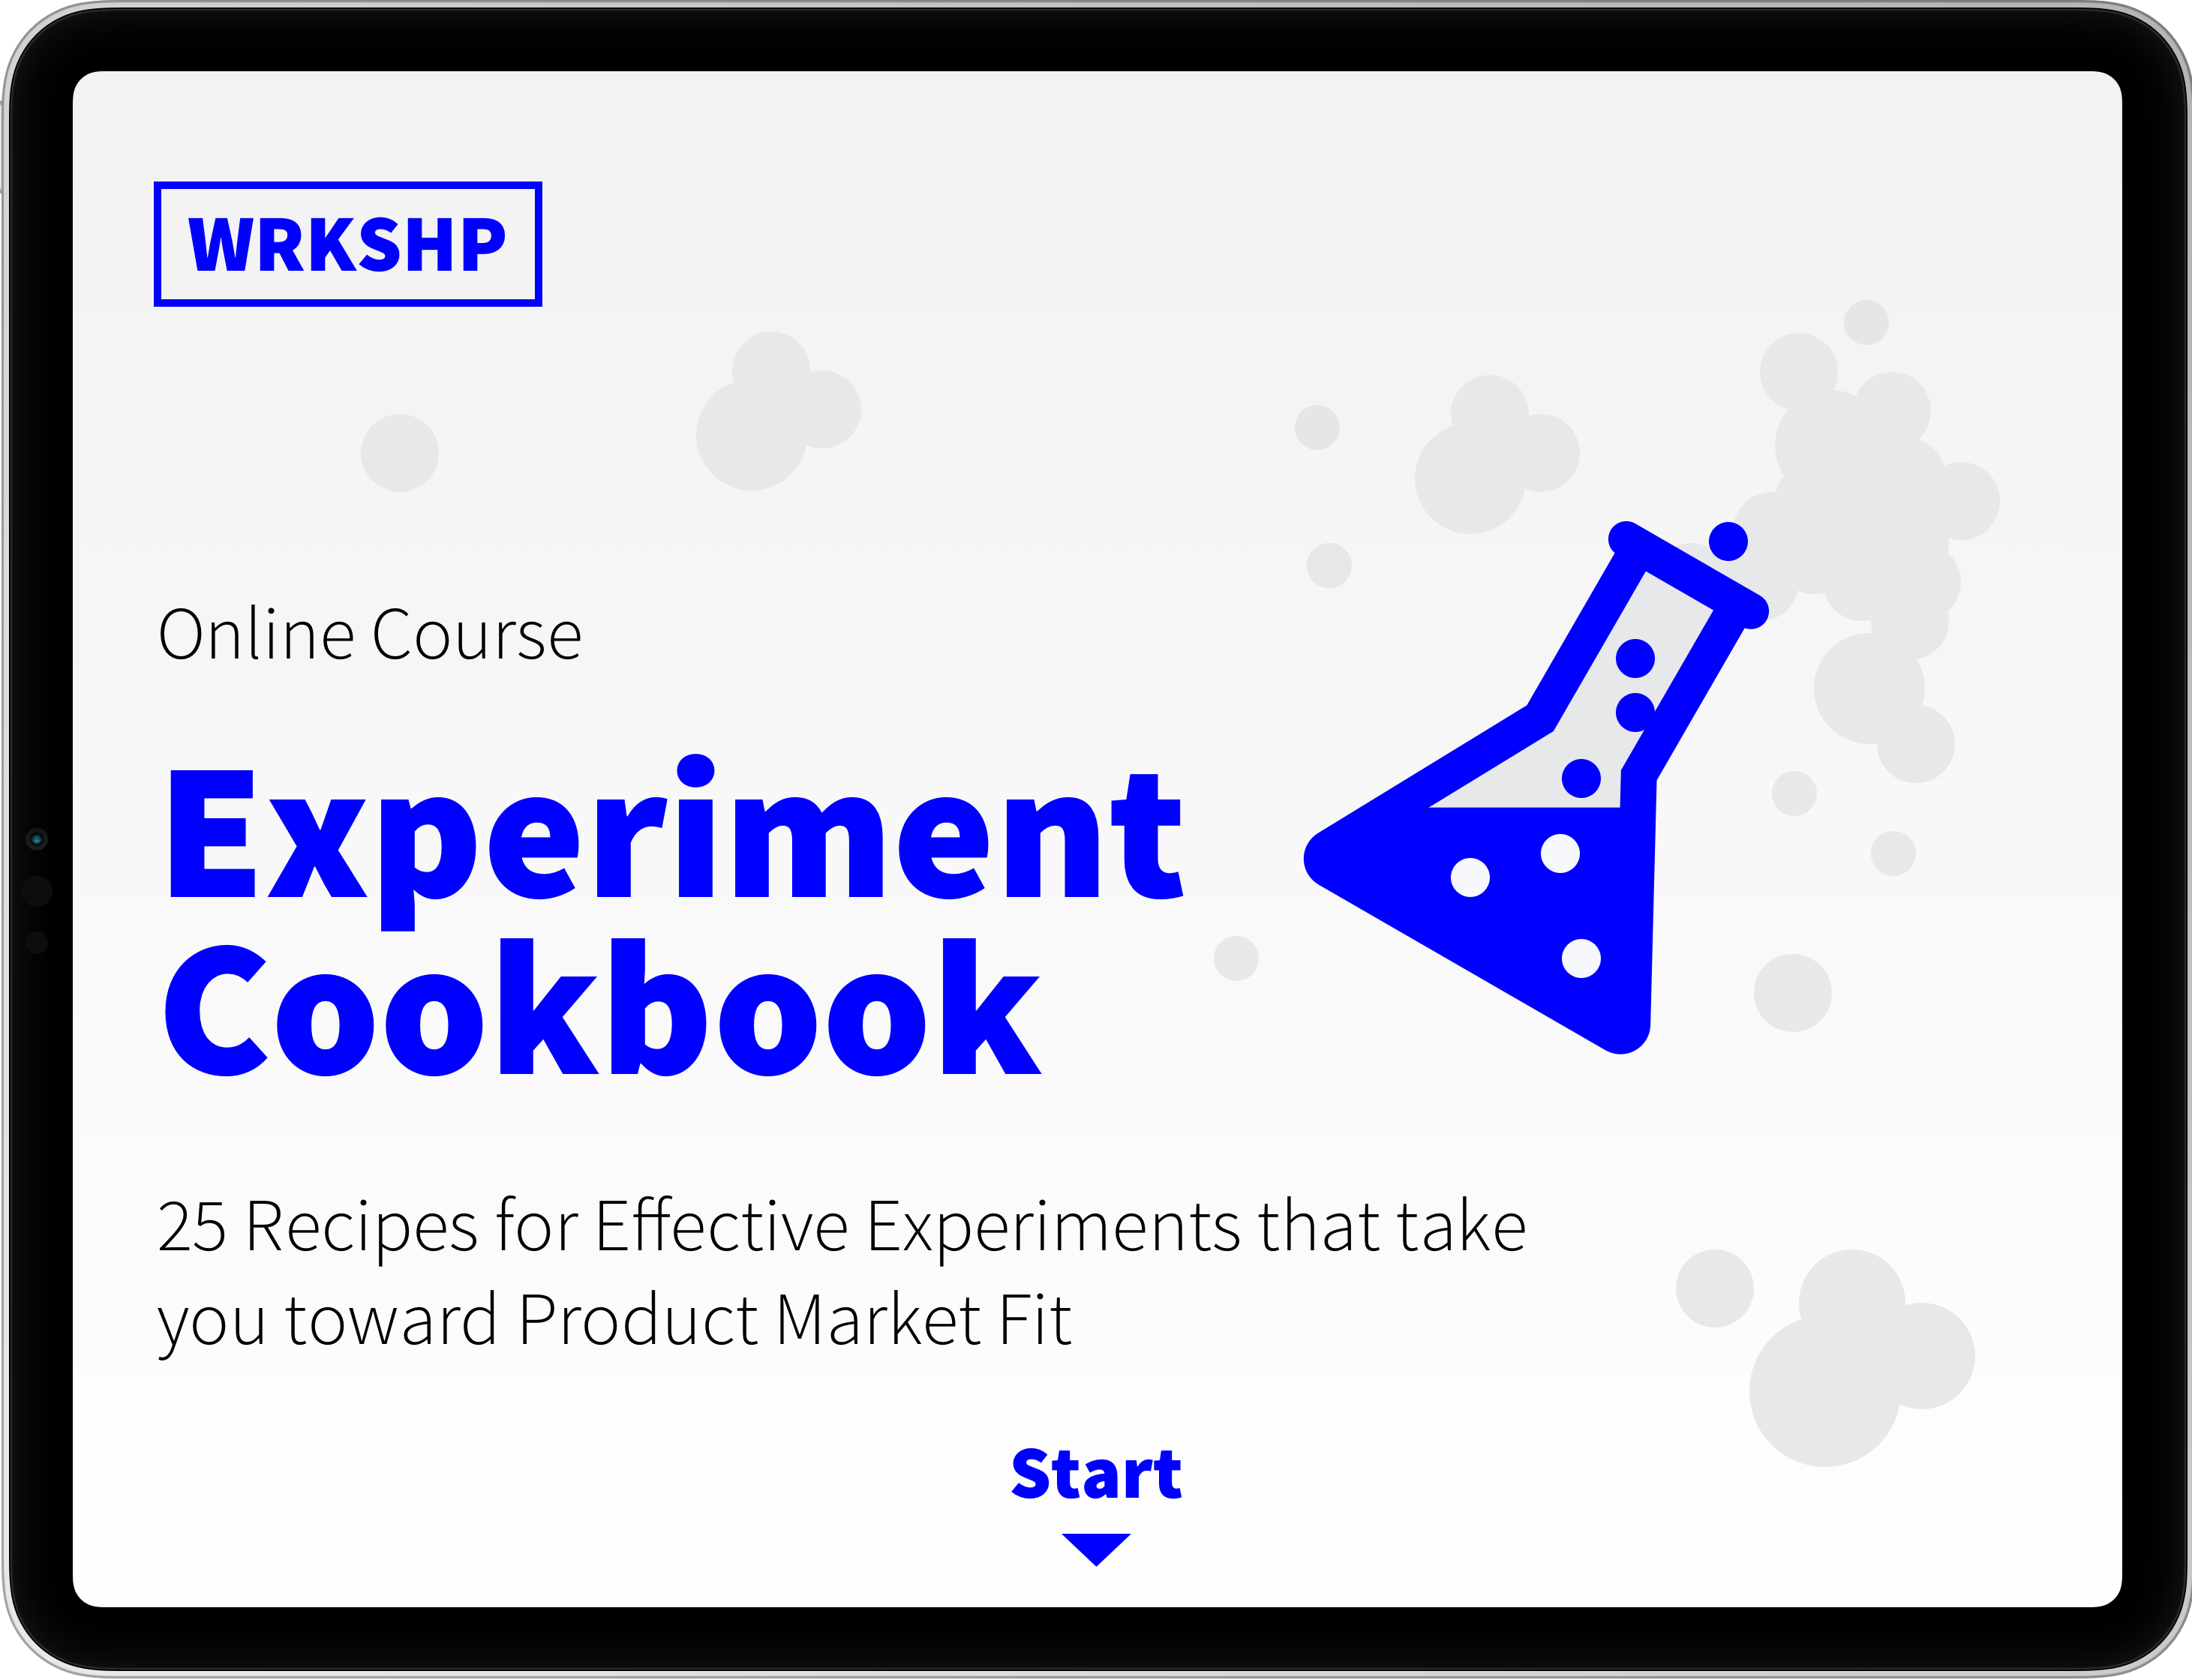 Experiment Cookbook